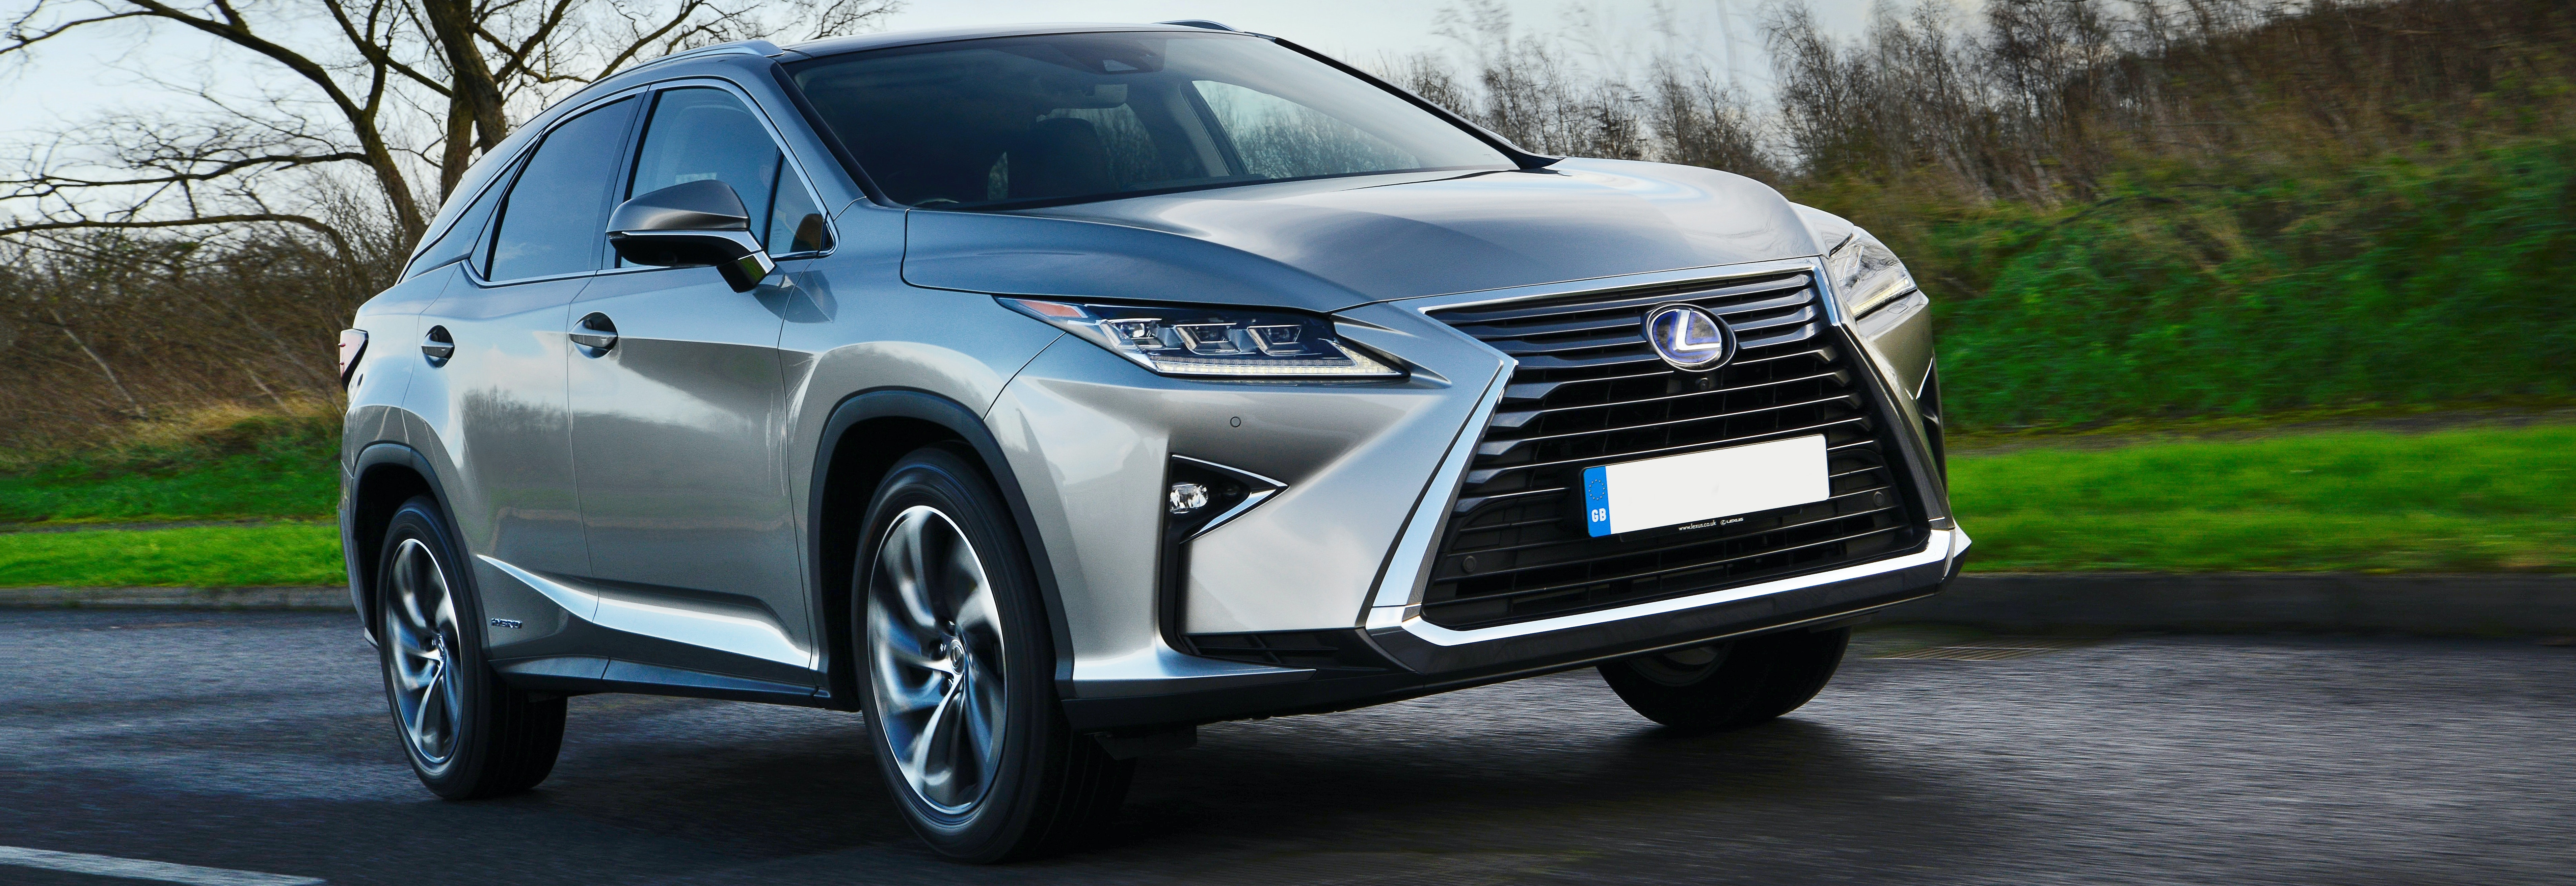 2018 lexus rx silver driving front